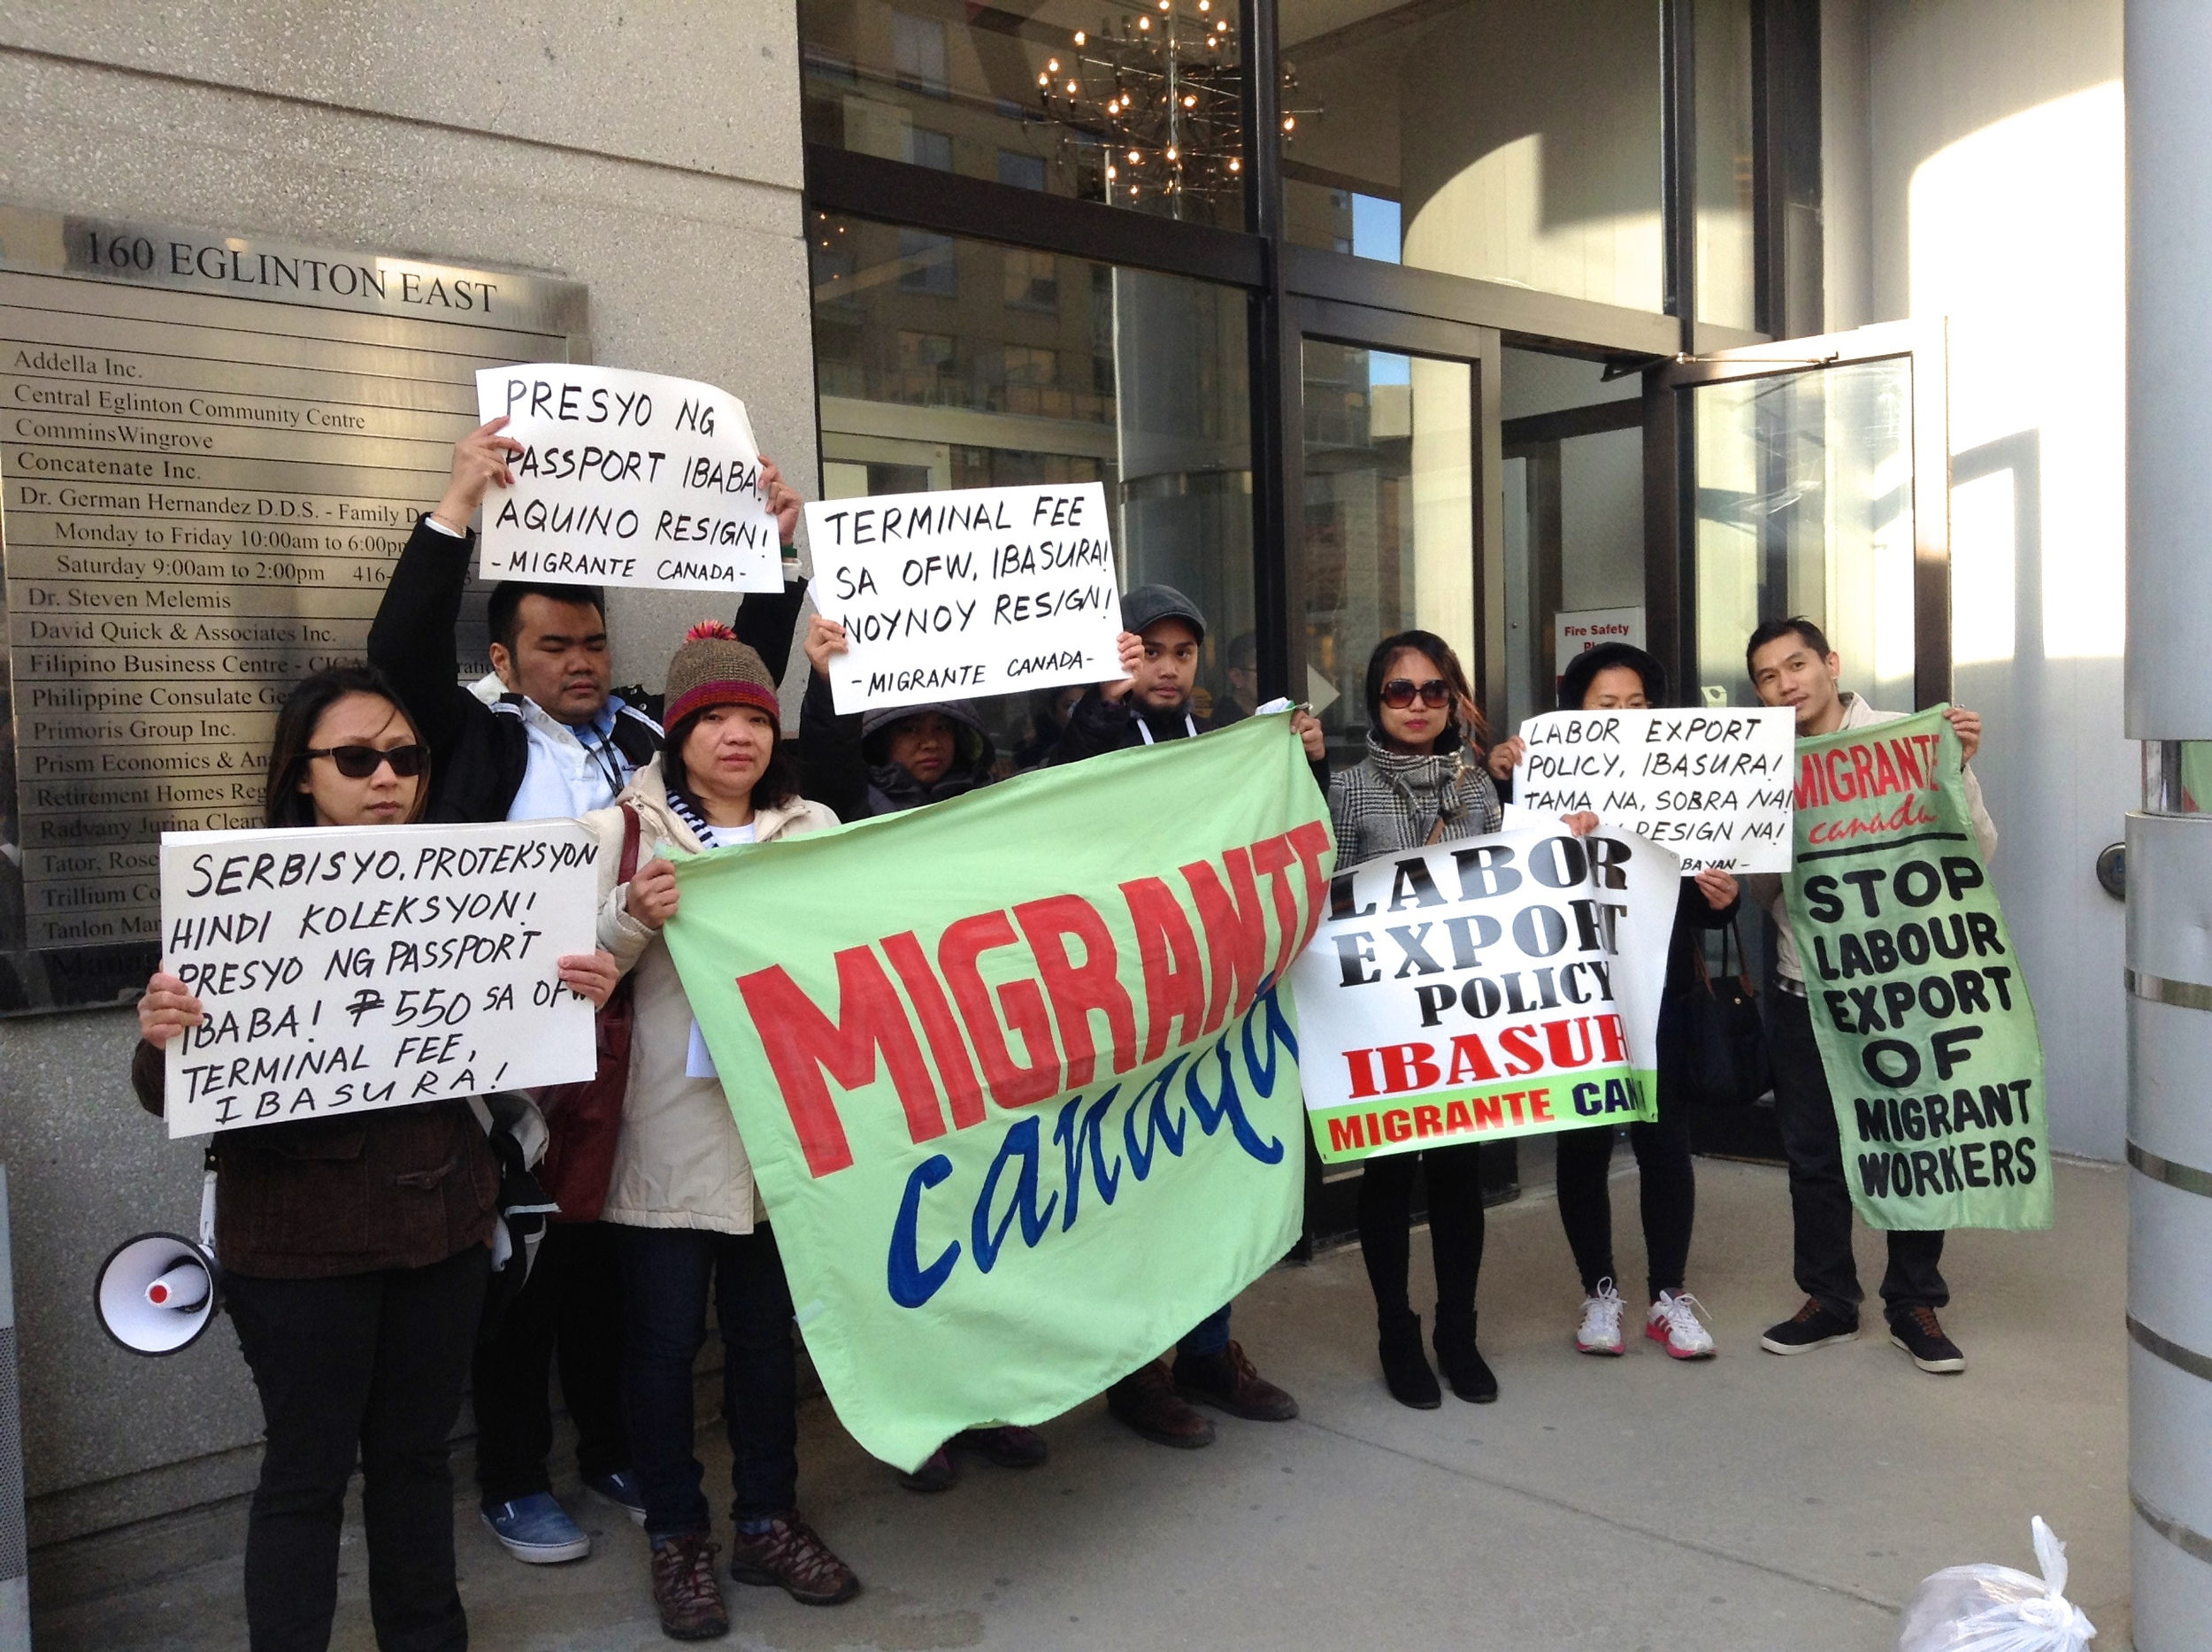 Representatives from Migrante Ontario, iWWorkers, Gabriela Canada, and Anakbayan Toronto rallying outside of the Philippine Consulate.